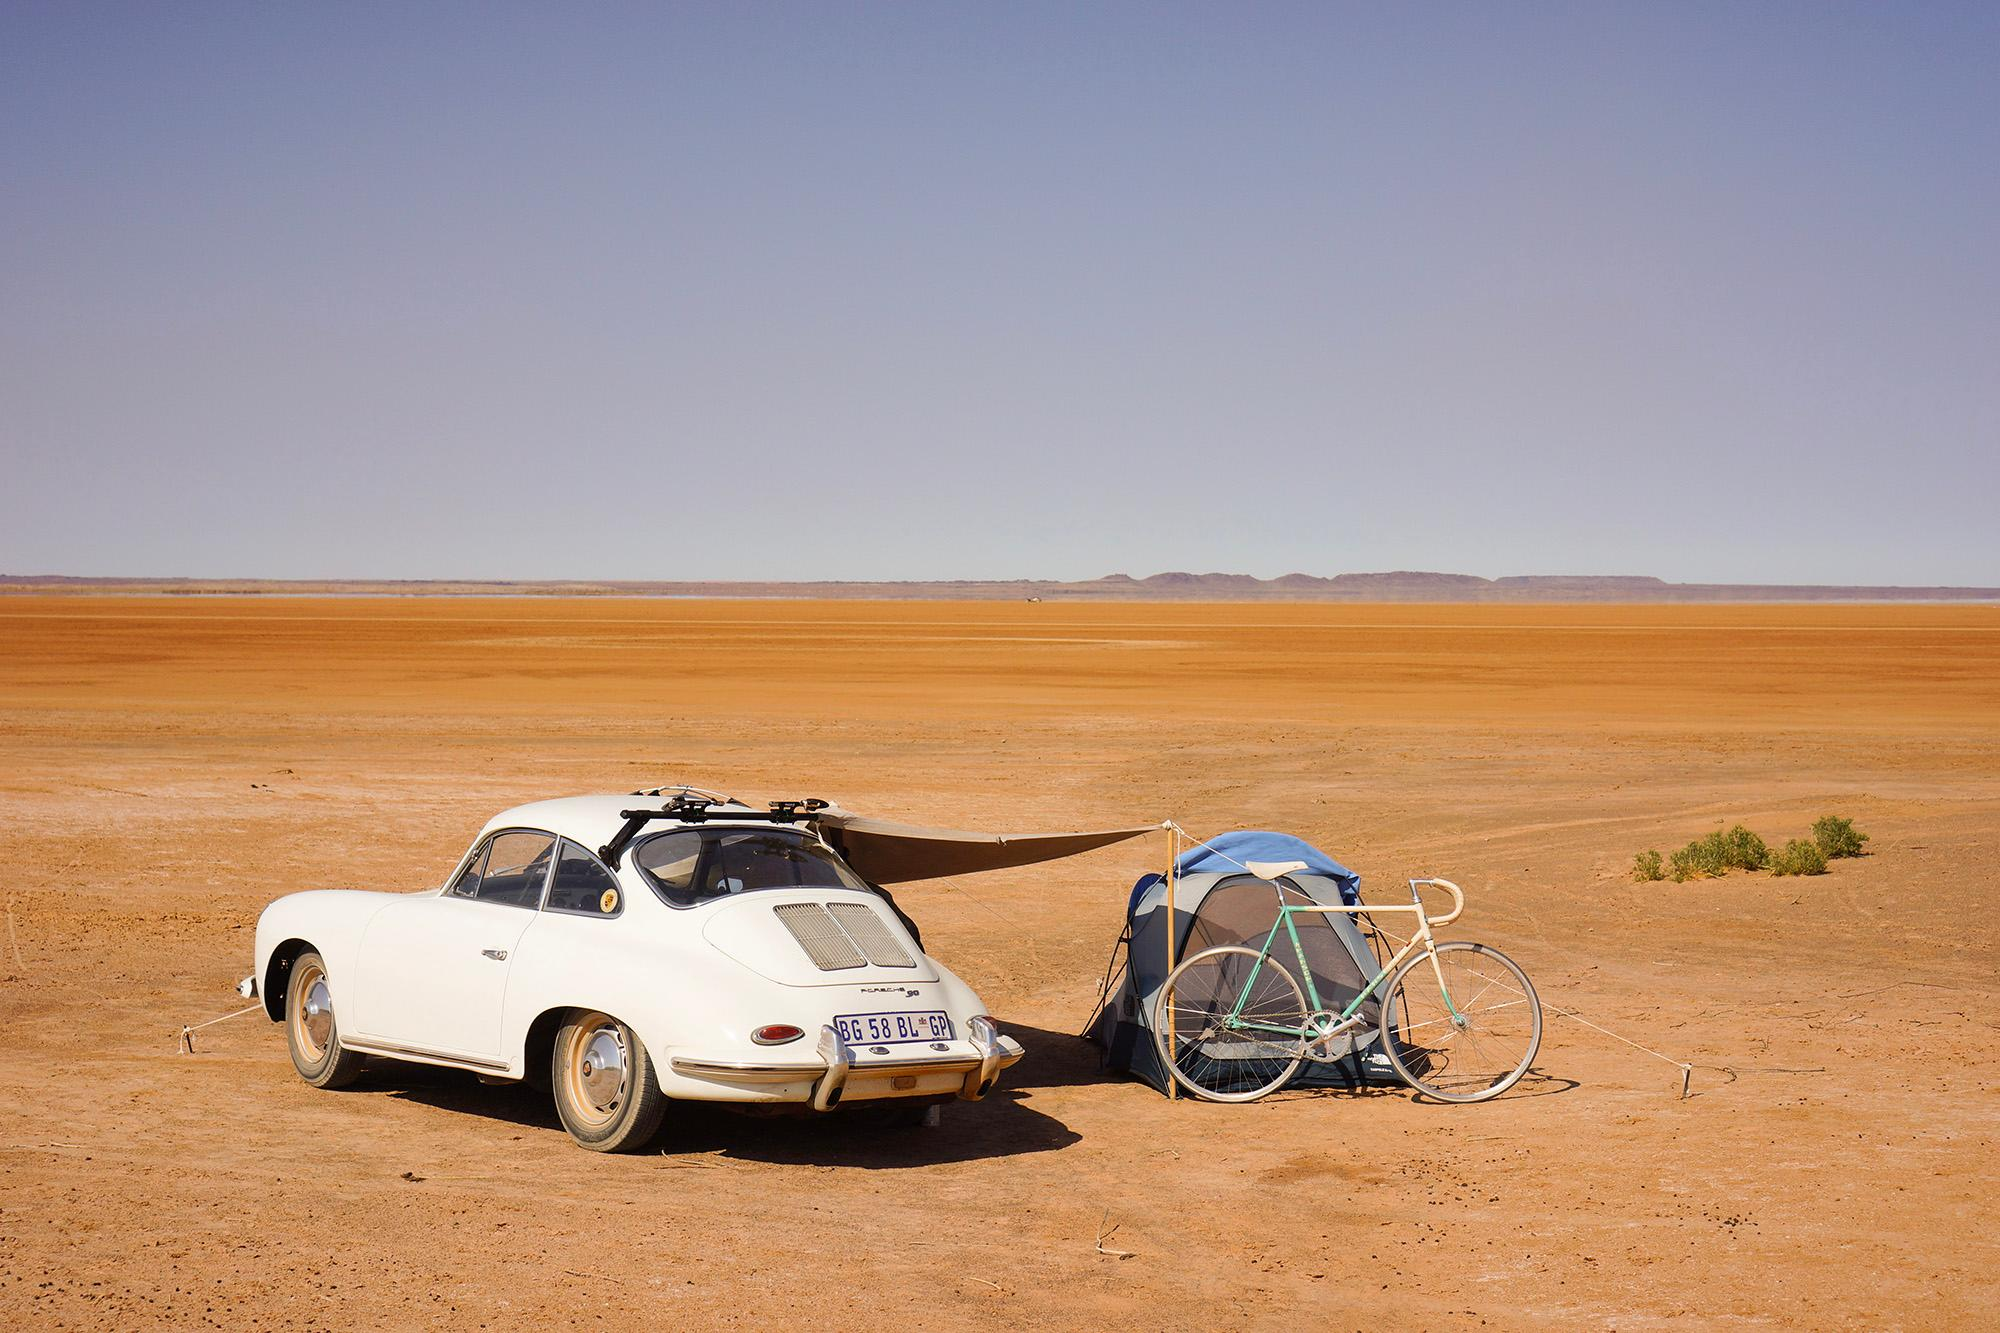 Our camp on the edge of the pan. Hakskeenpan, 2014.